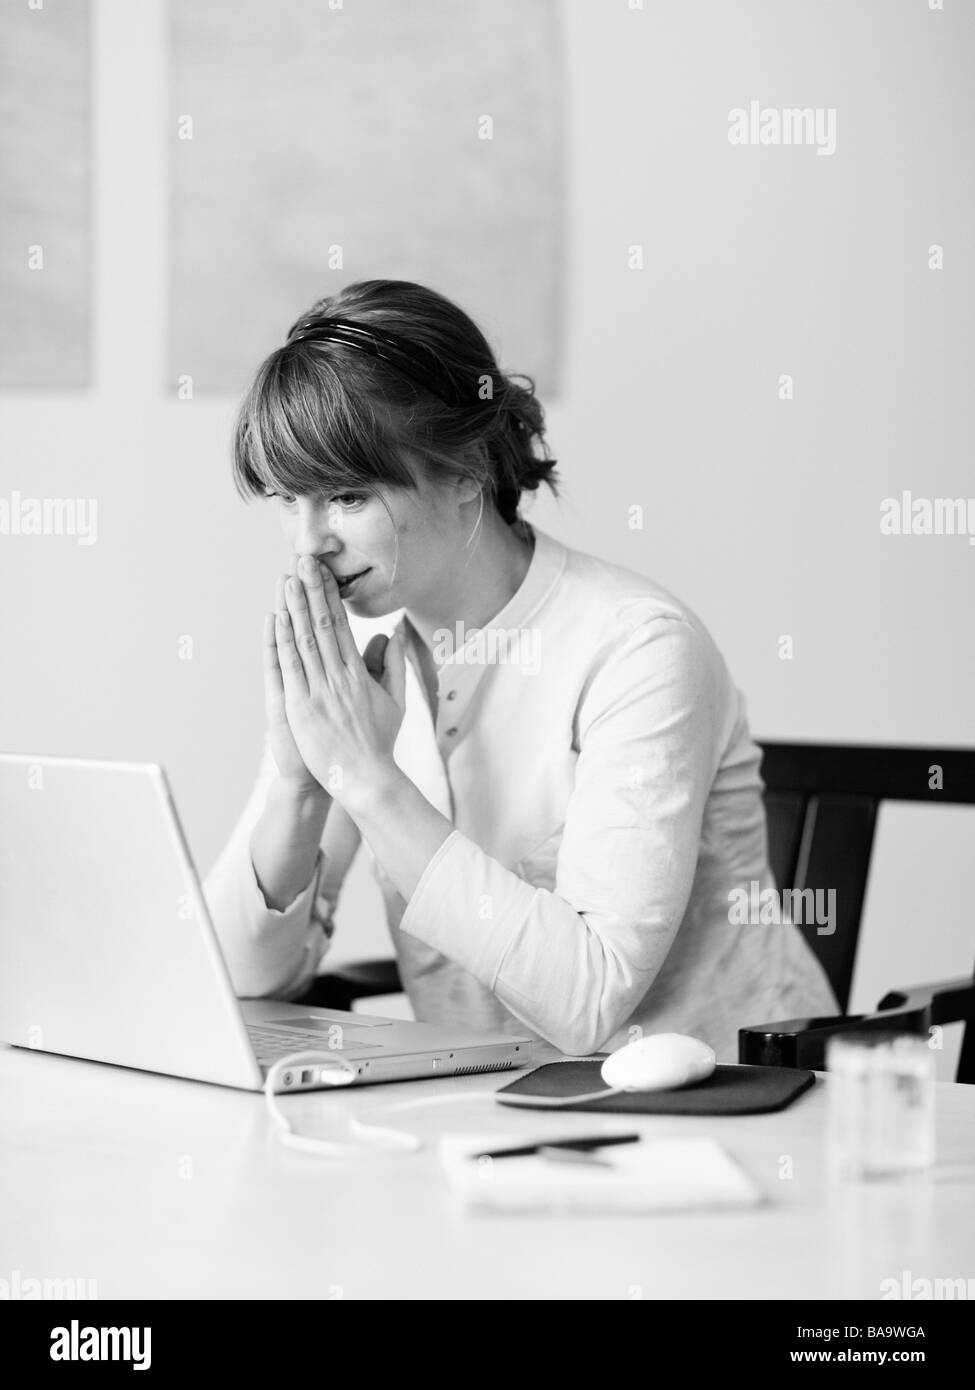 A woman using a laptop, Sweden. - Stock Image